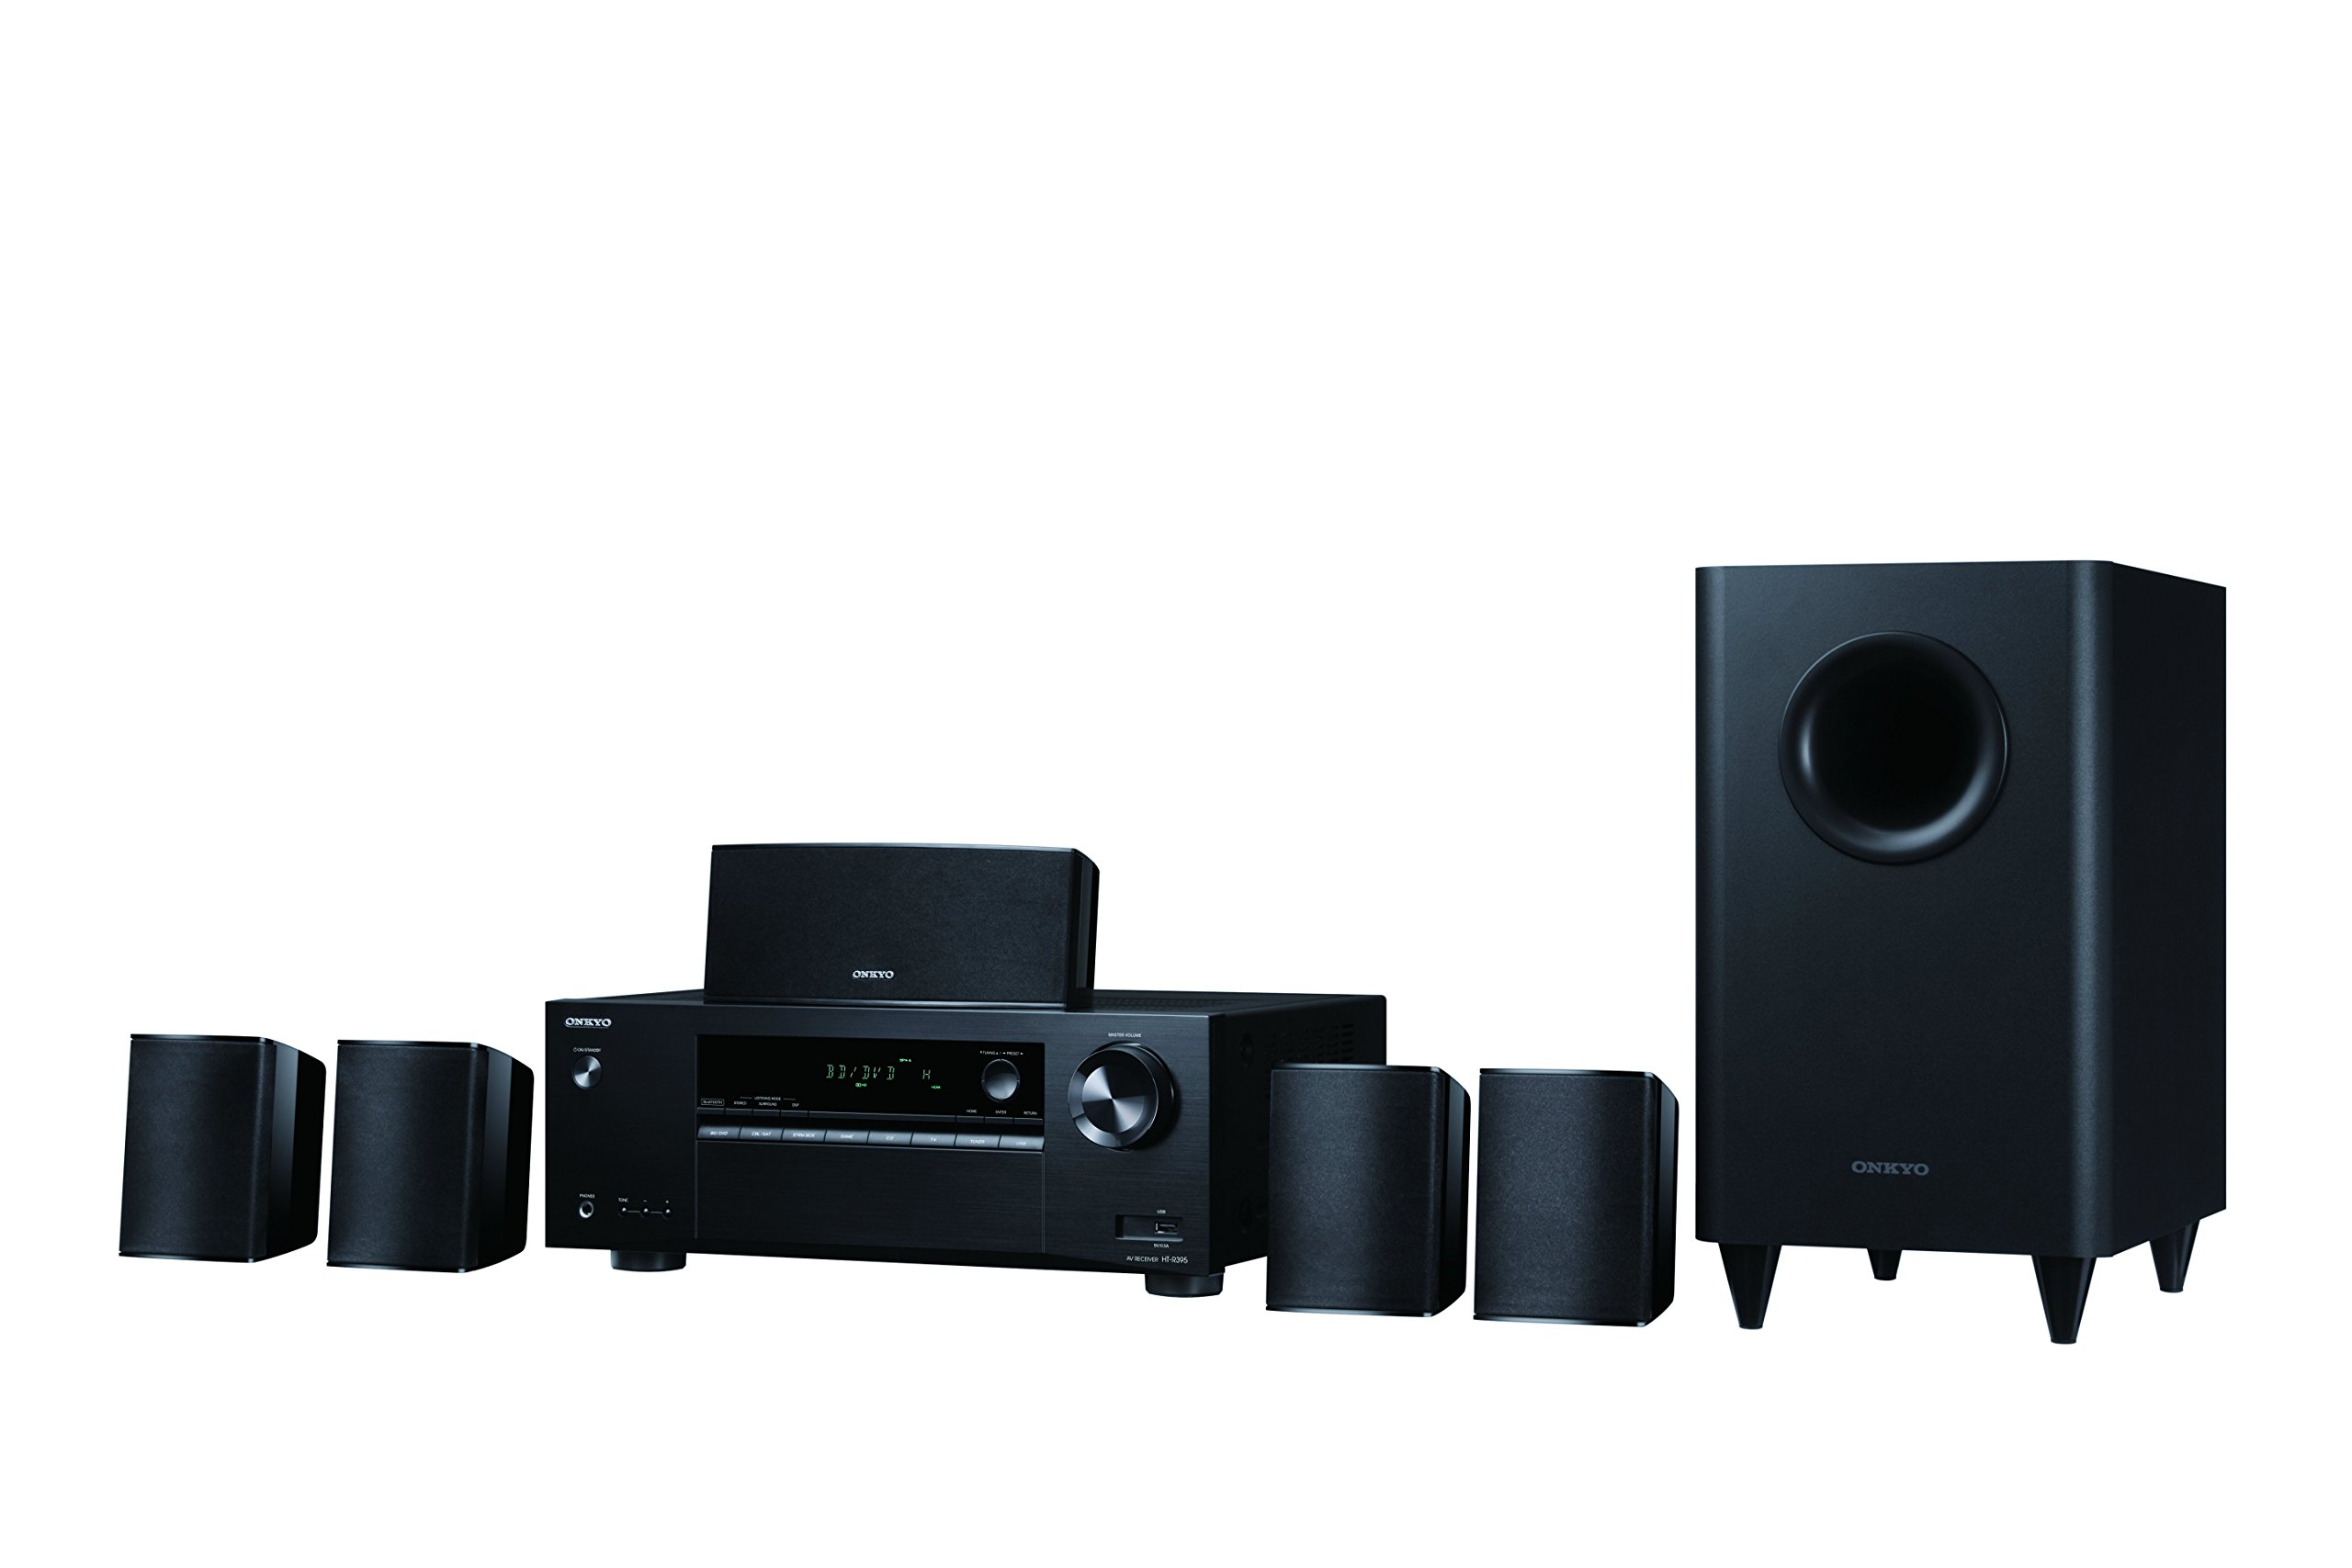 Onkyo HT-S3800 5.1 Channel Home Theater Package by Onkyo